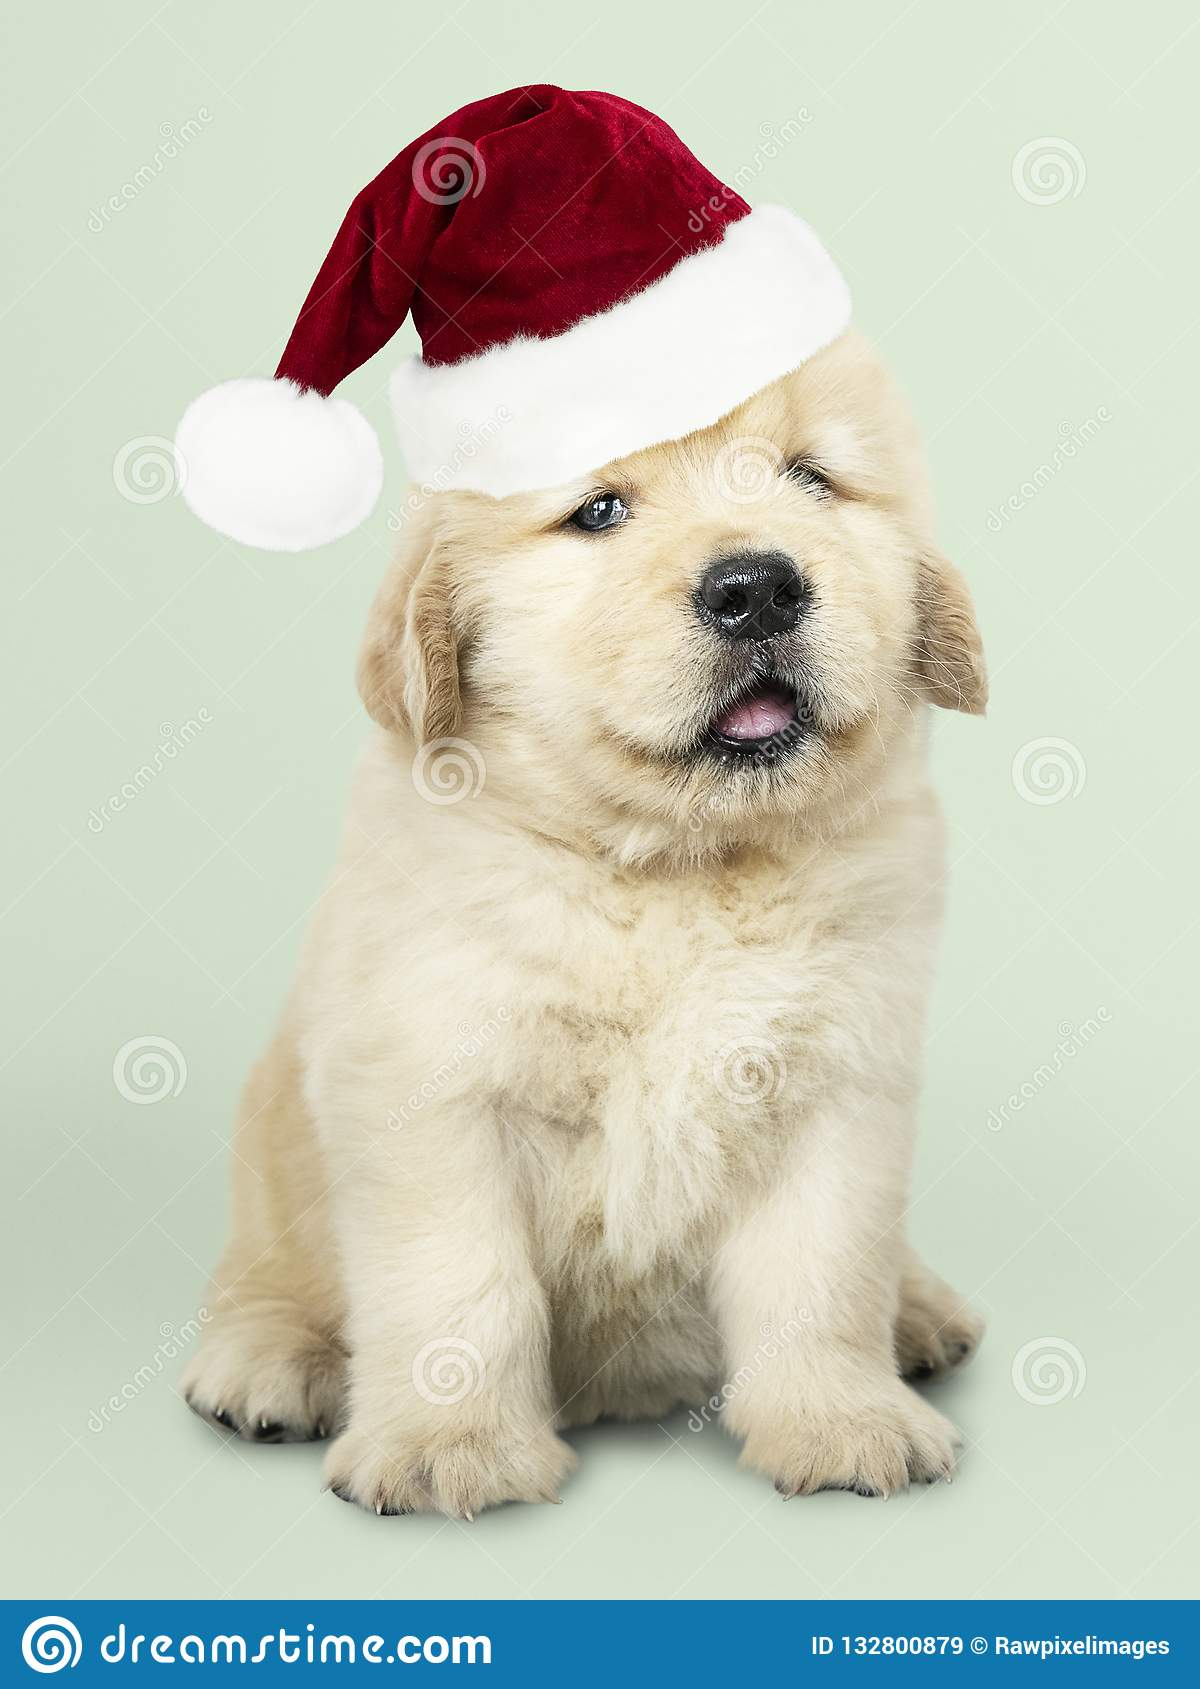 Portrait Of A Cute Golden Retriever Puppy Wearing A Santa Hat Stock Image Image Of Green Pooch 132800879